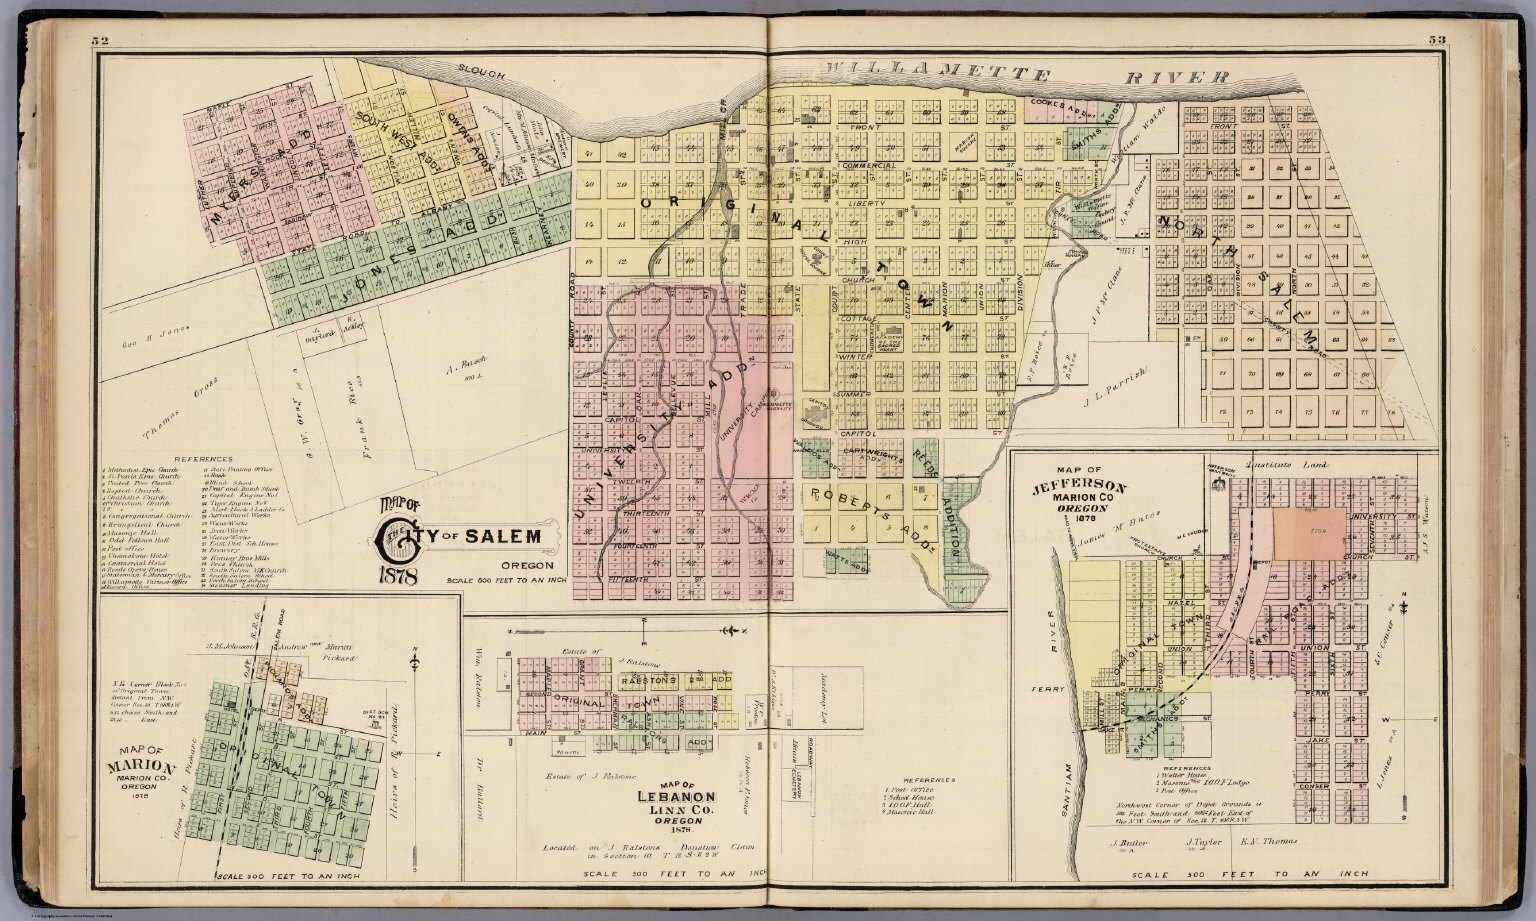 City of Salem, Oregon, 1878. - David Rumsey Historical Map Collection